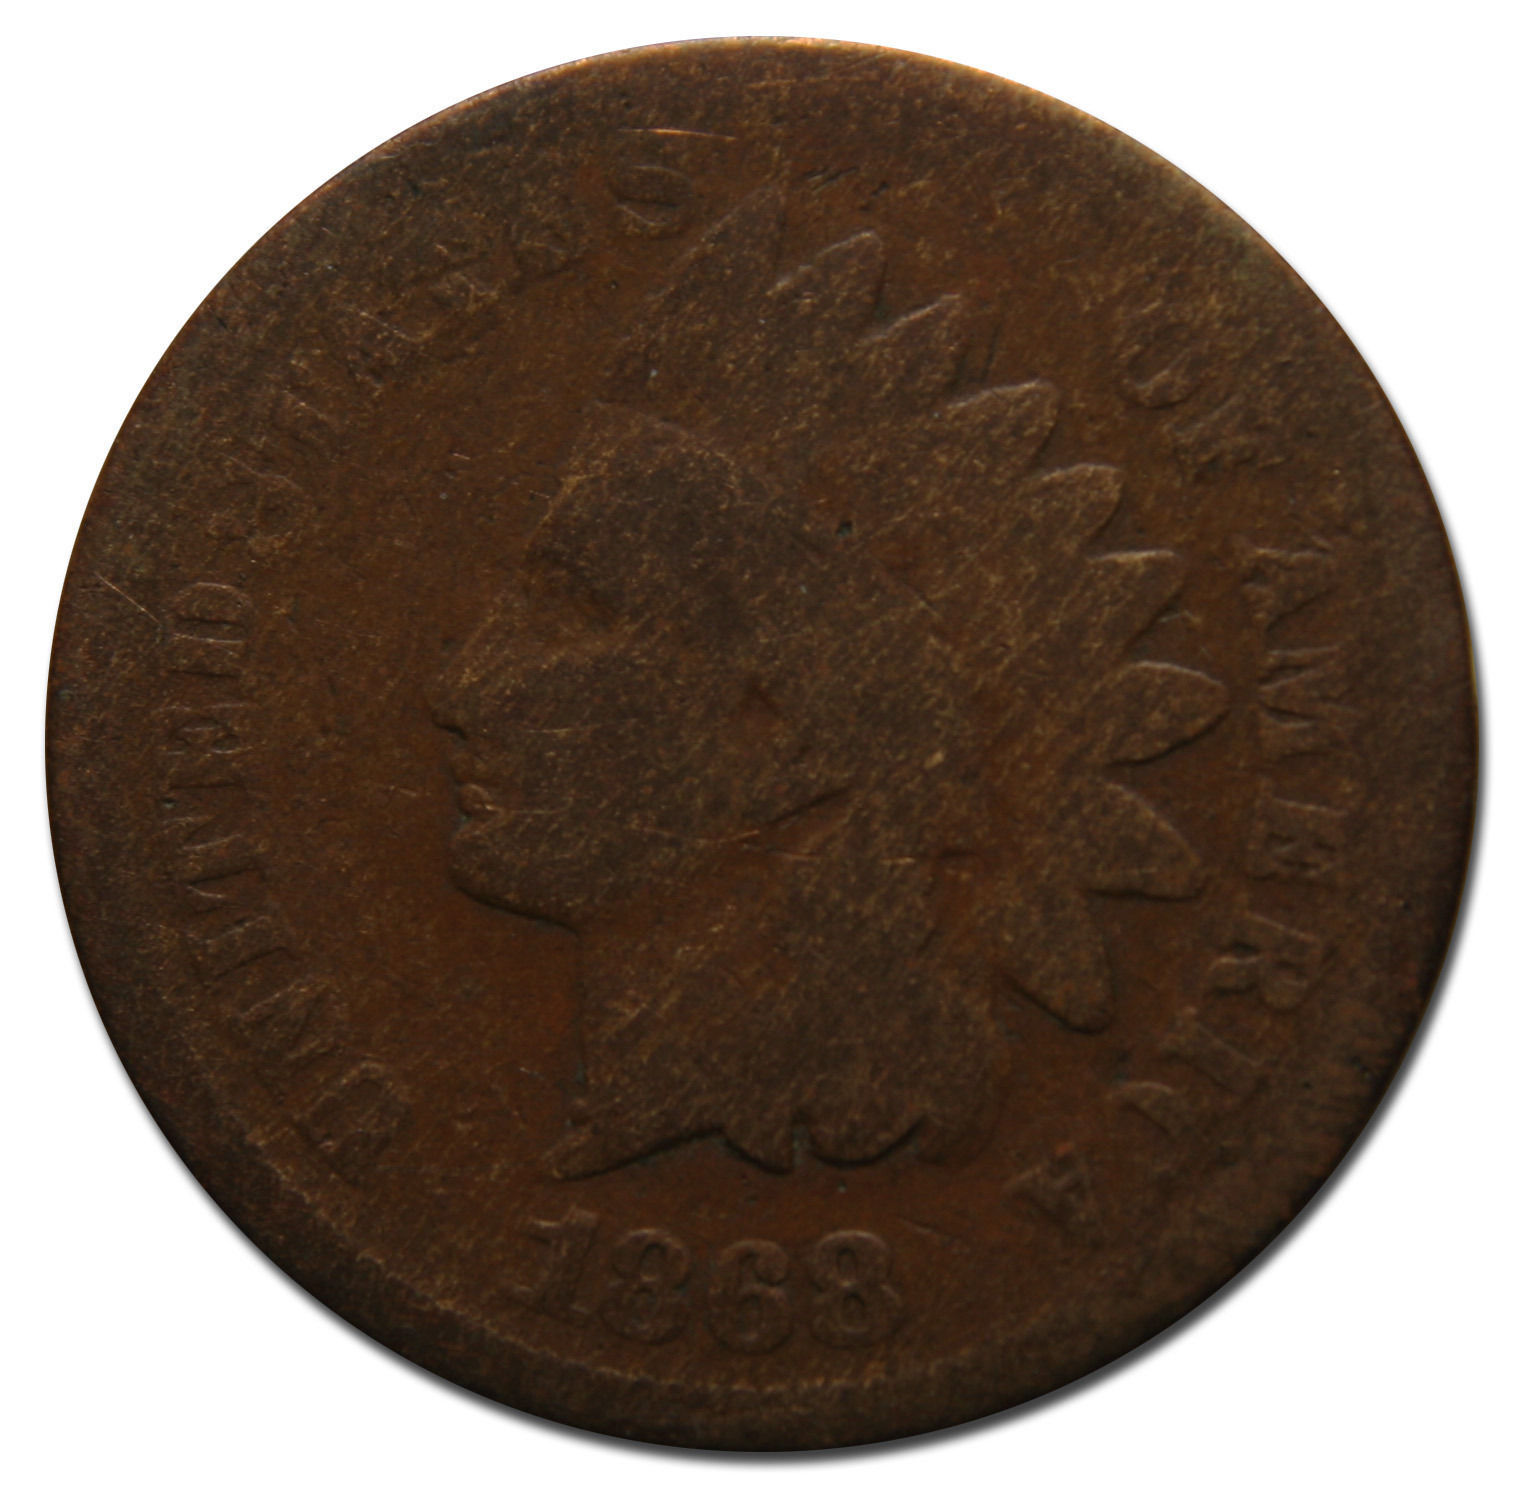 1868 One Cent Indian Head Penny Coin Lot# MZ 3773